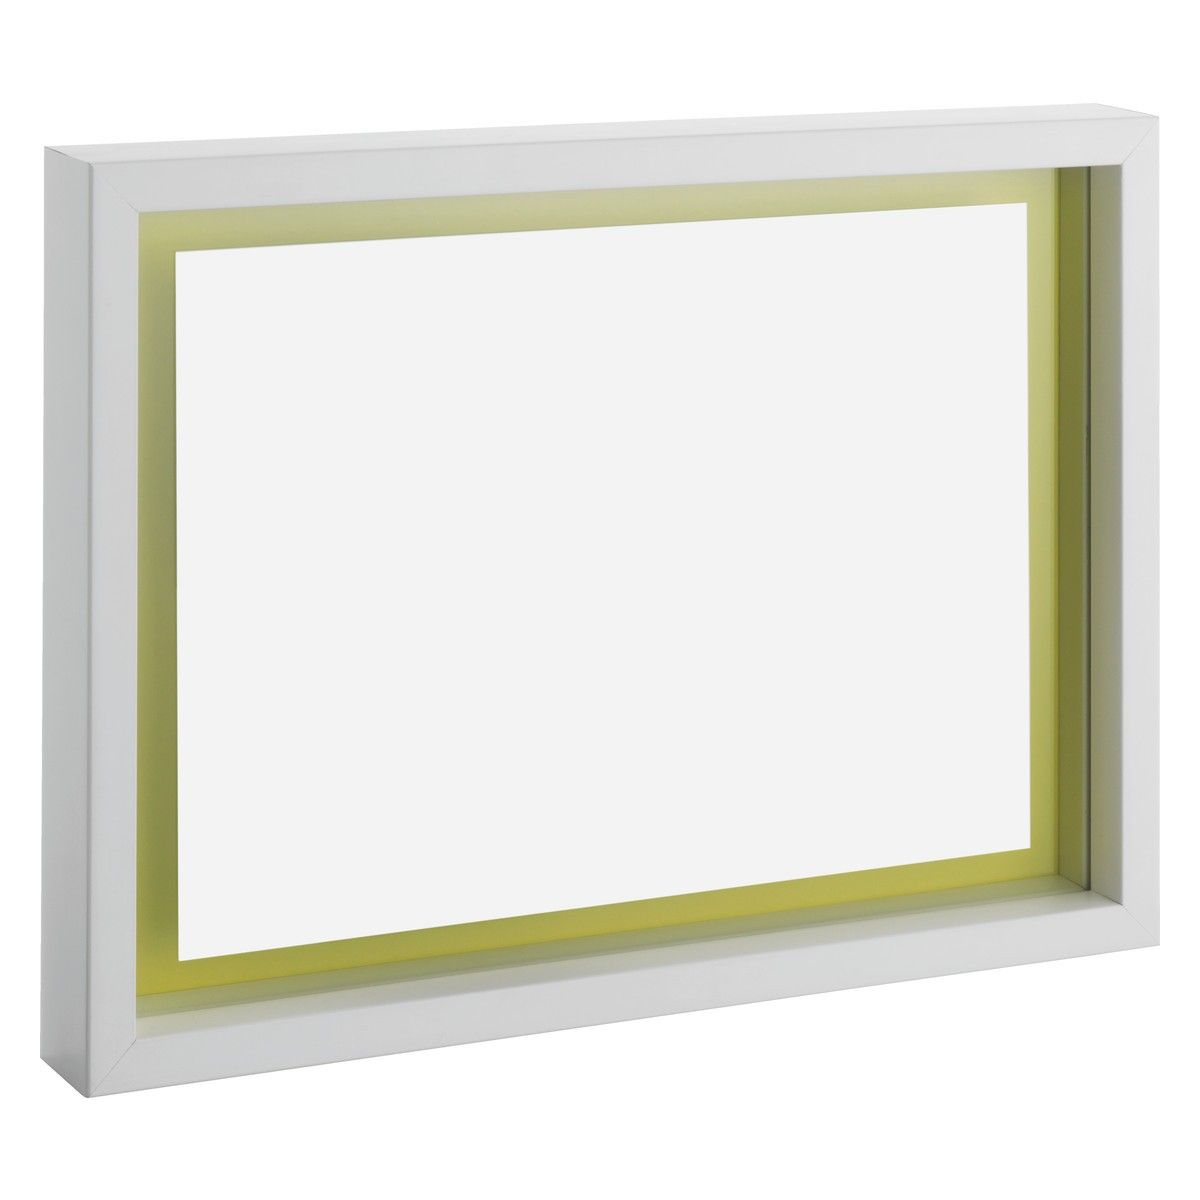 MONRO A4 white reversible floating picture frame. The frame has a ...